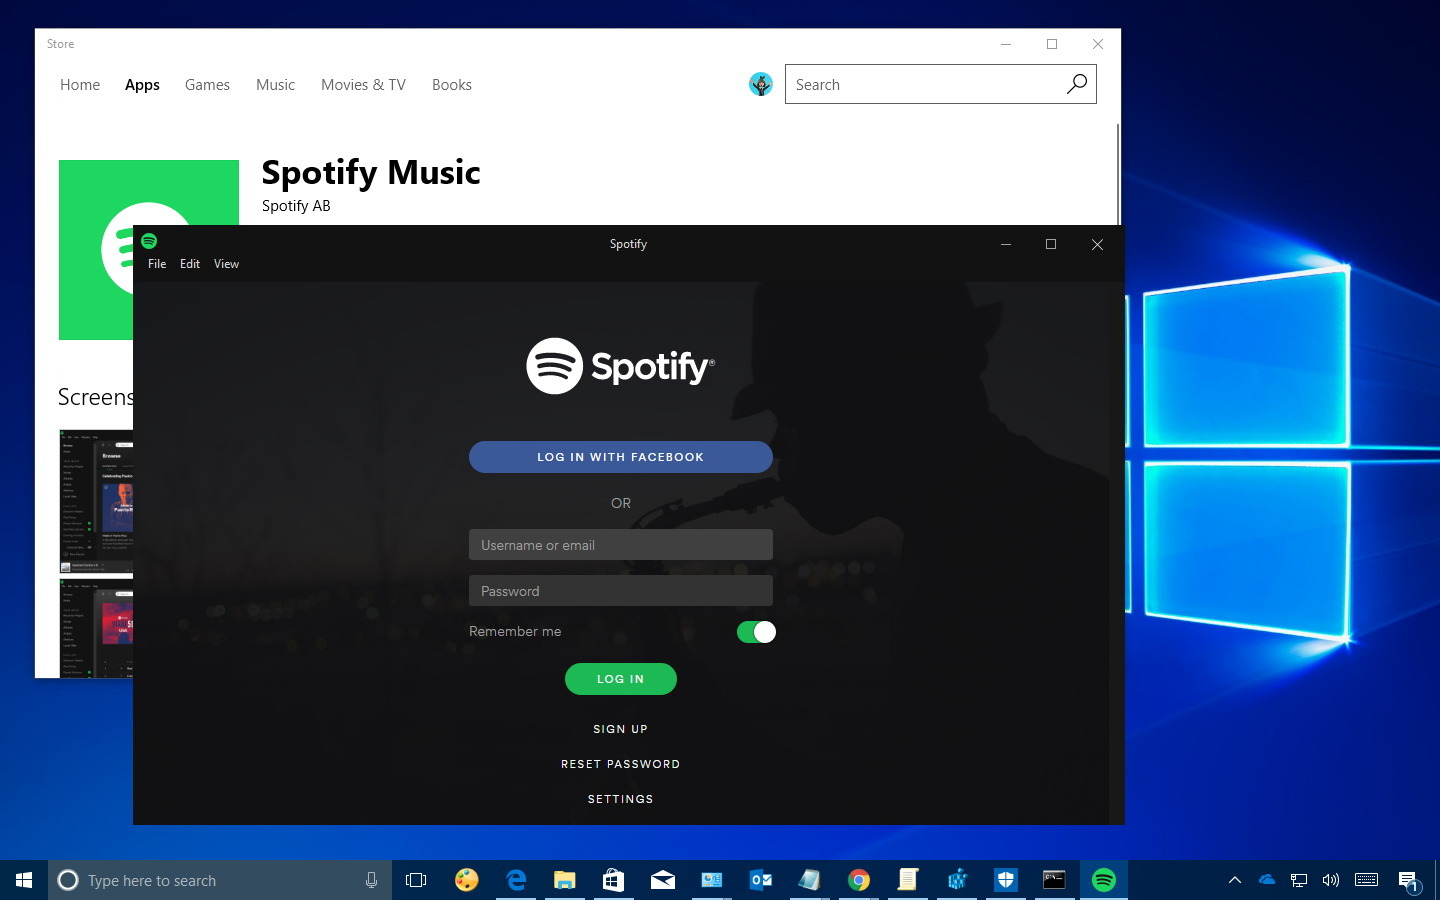 Spotify app for Windows 10 is now available in the Windows Store